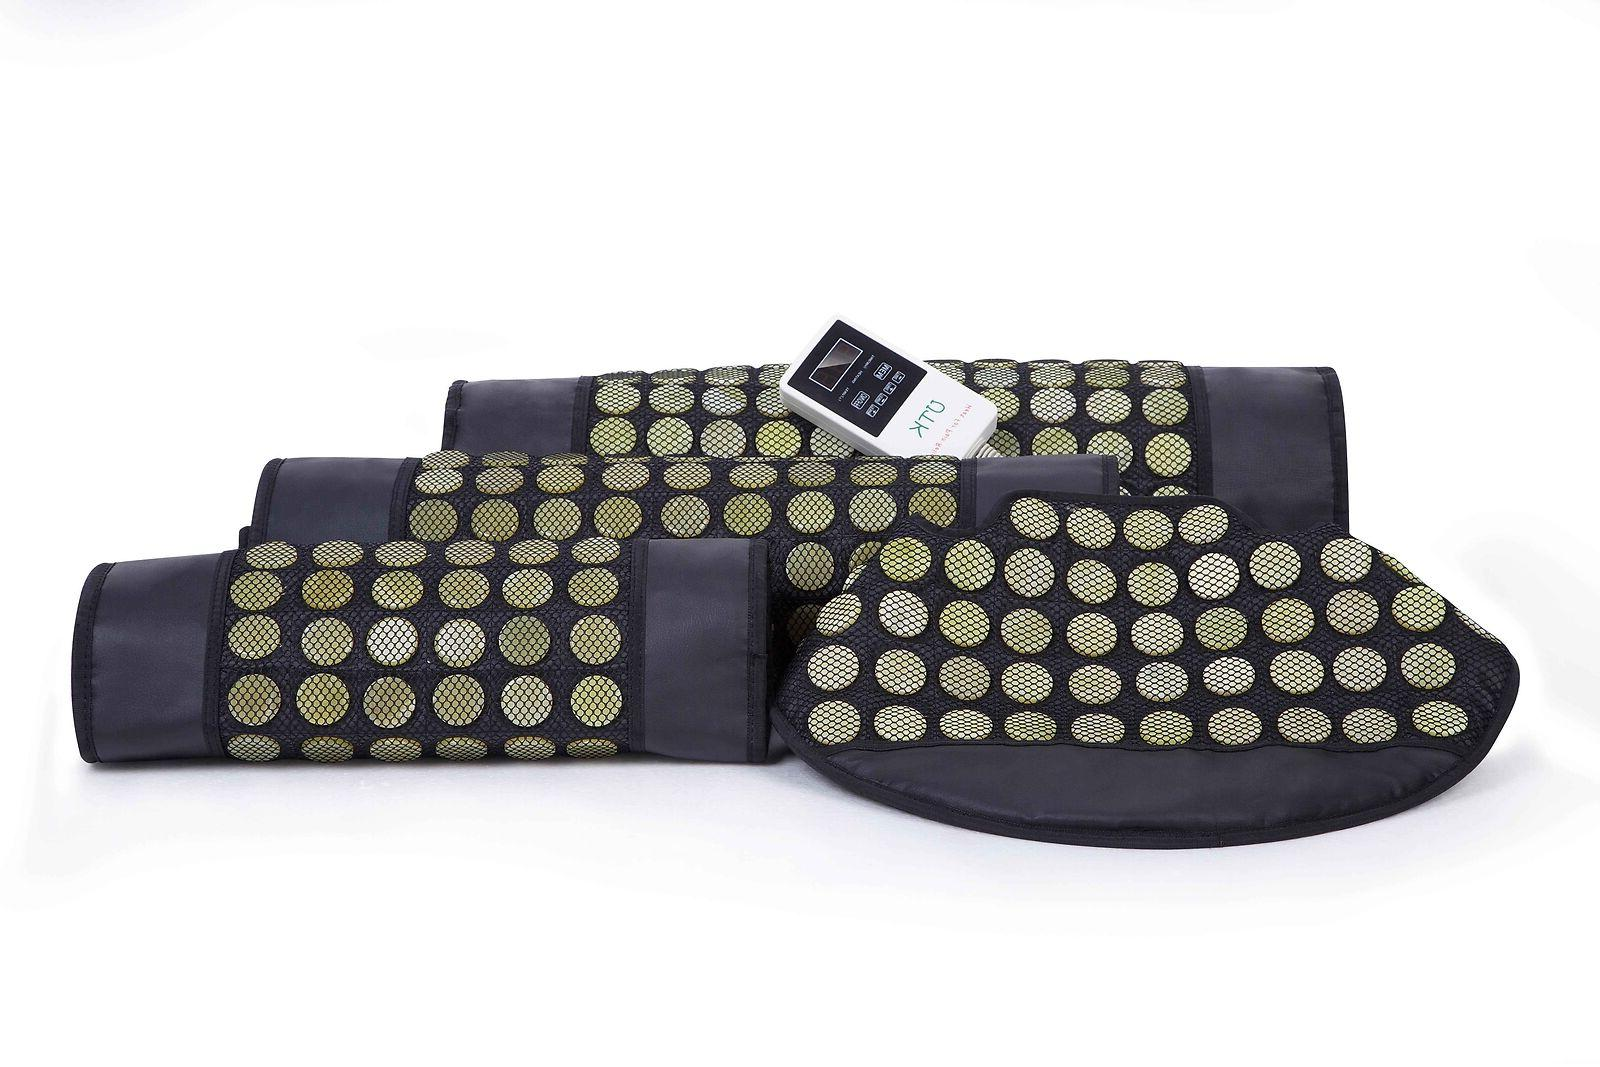 Natural Far Infrared Jade Heating Pad Therapy Large 24x70